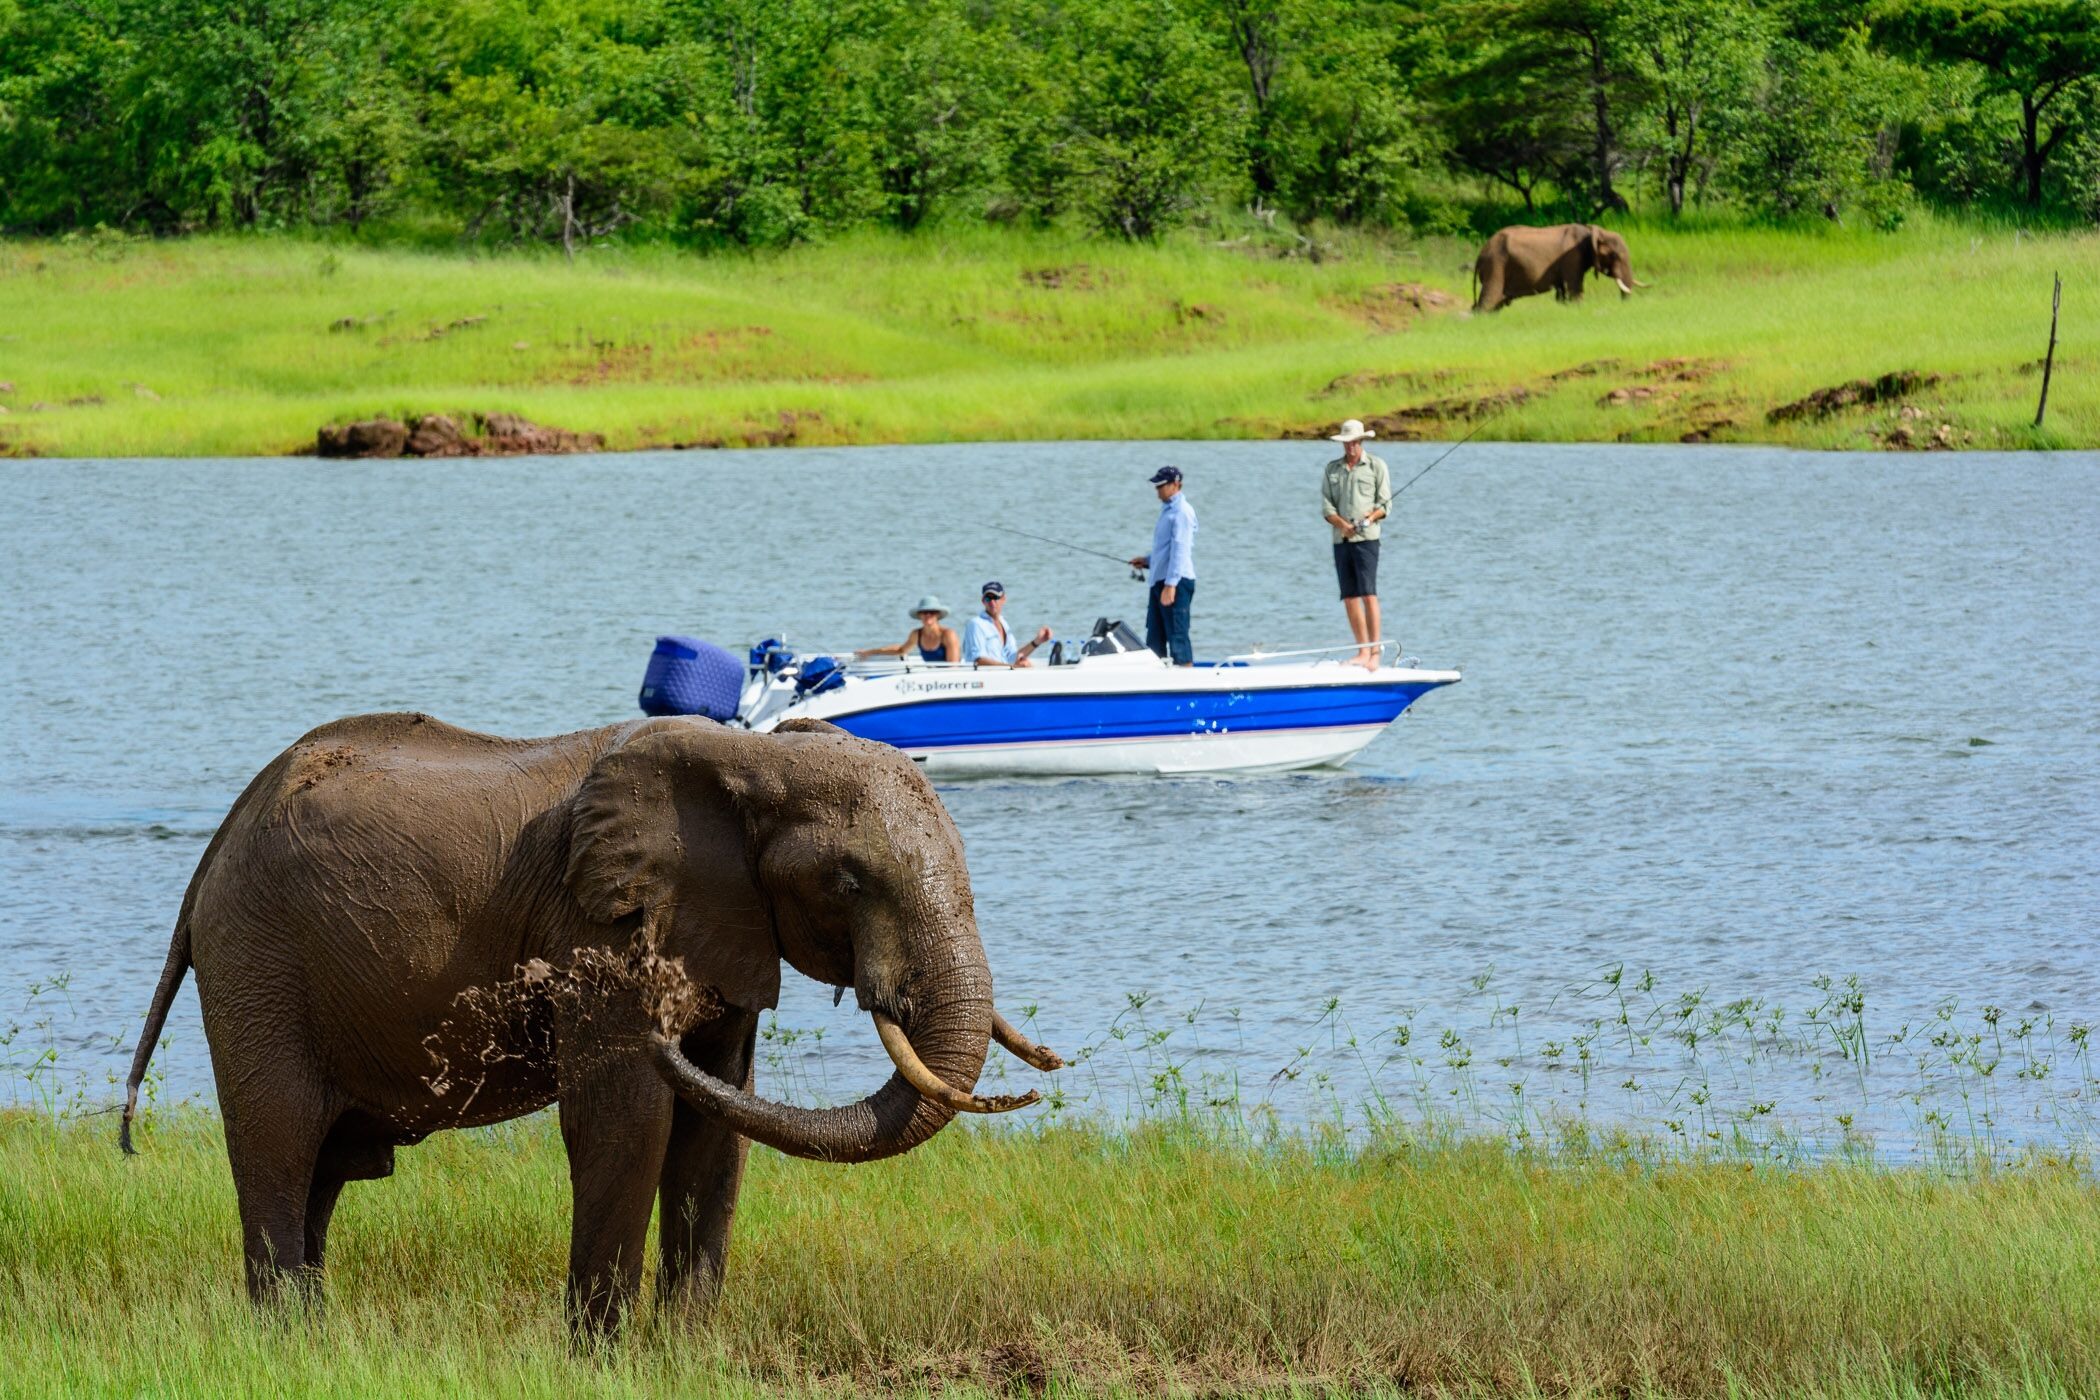 boat of fisherman with elephant on bank fishing in Africa